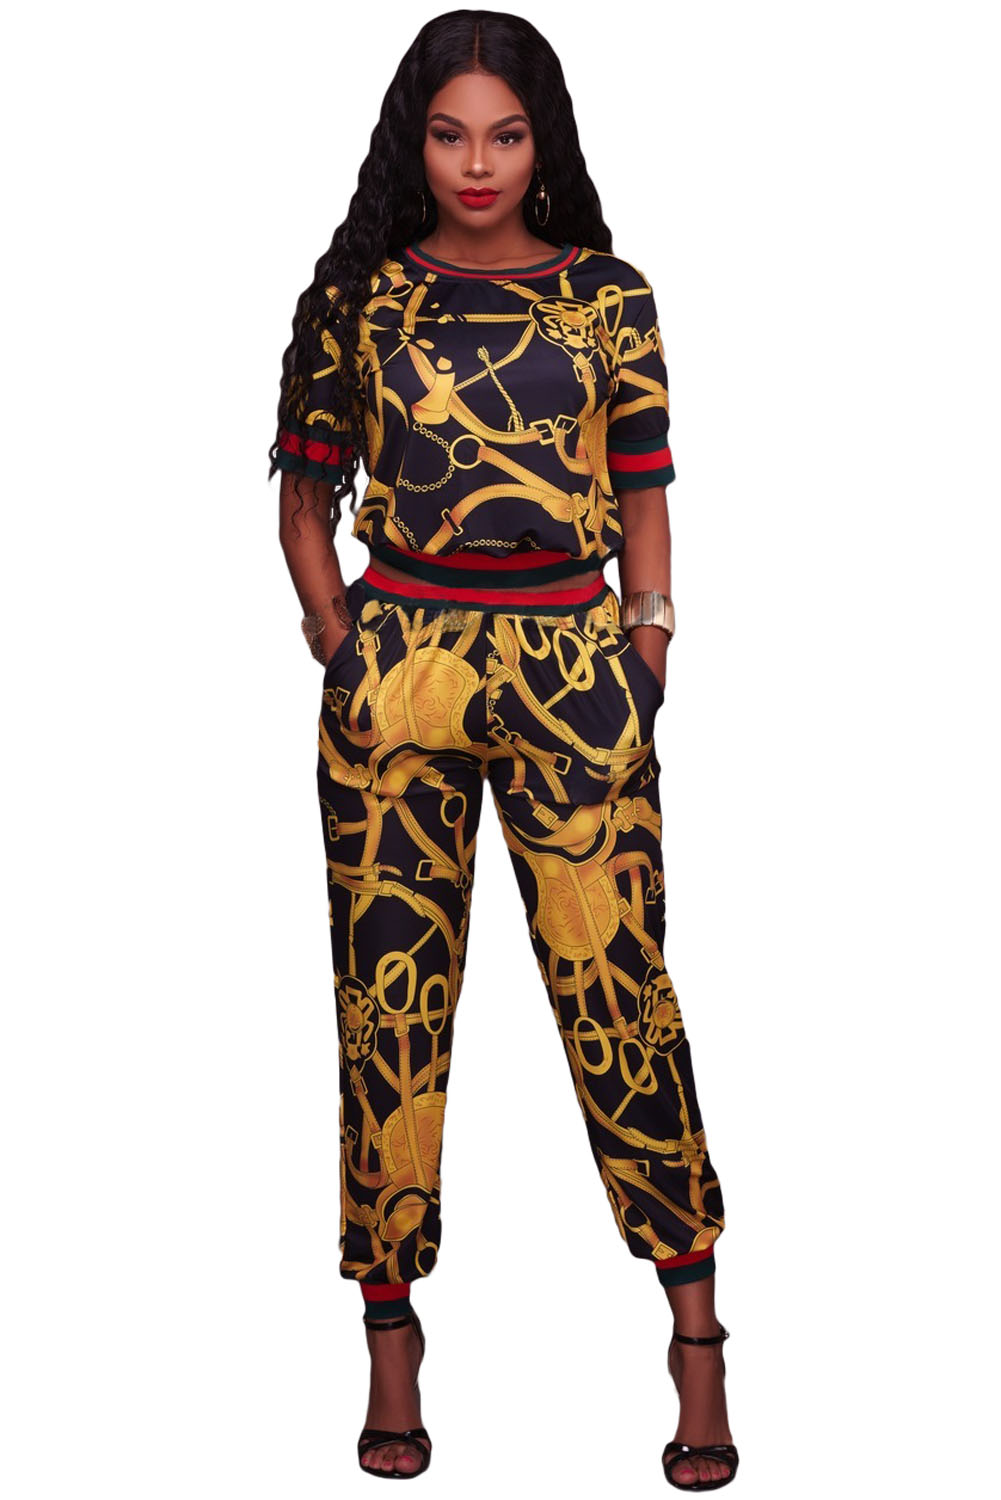 BY62071-2 Black Gold Multiple Print Two Piece Jogger Set